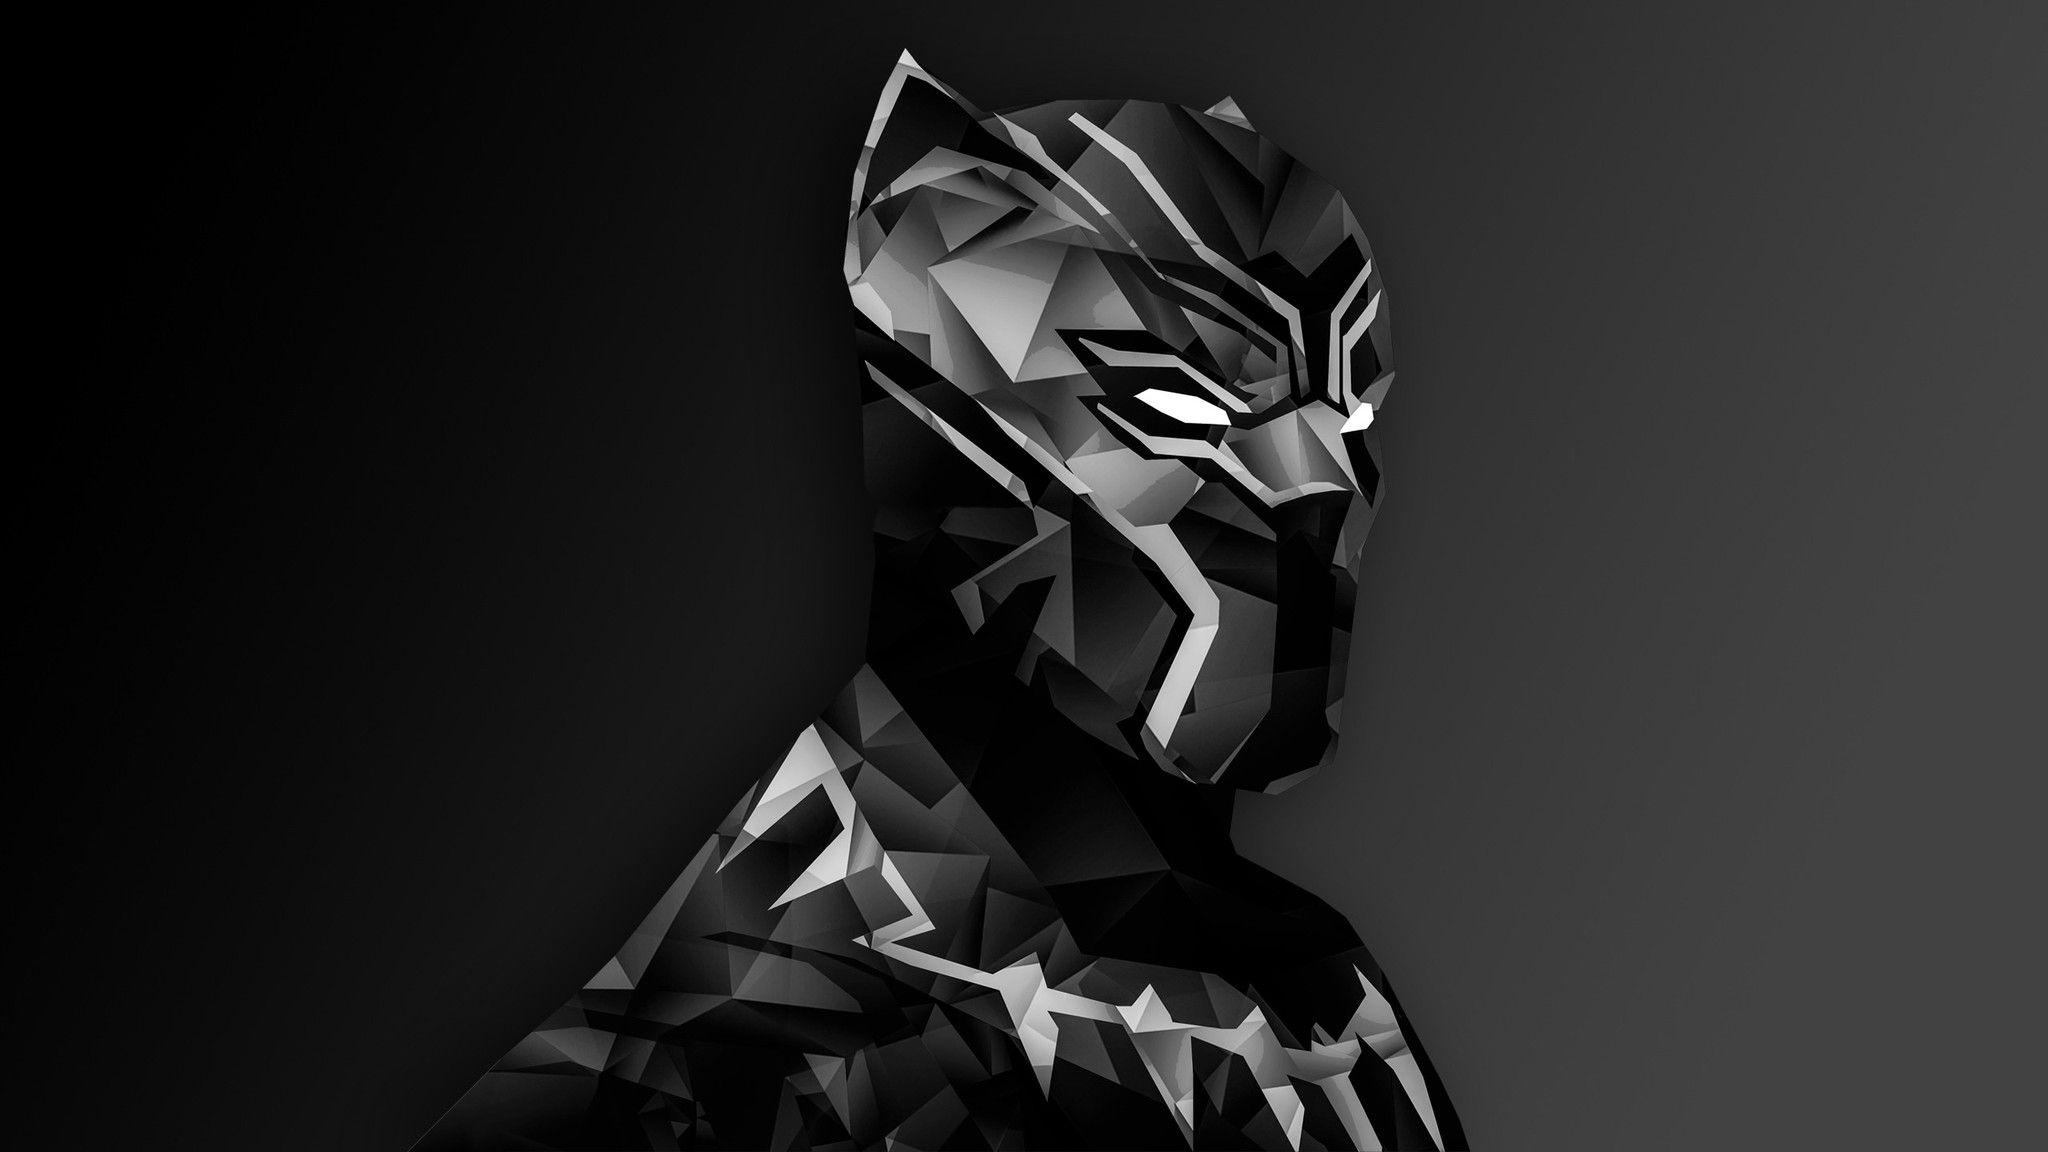 Download Black Panther Digital Art HD Wallpapers In 2048x1152